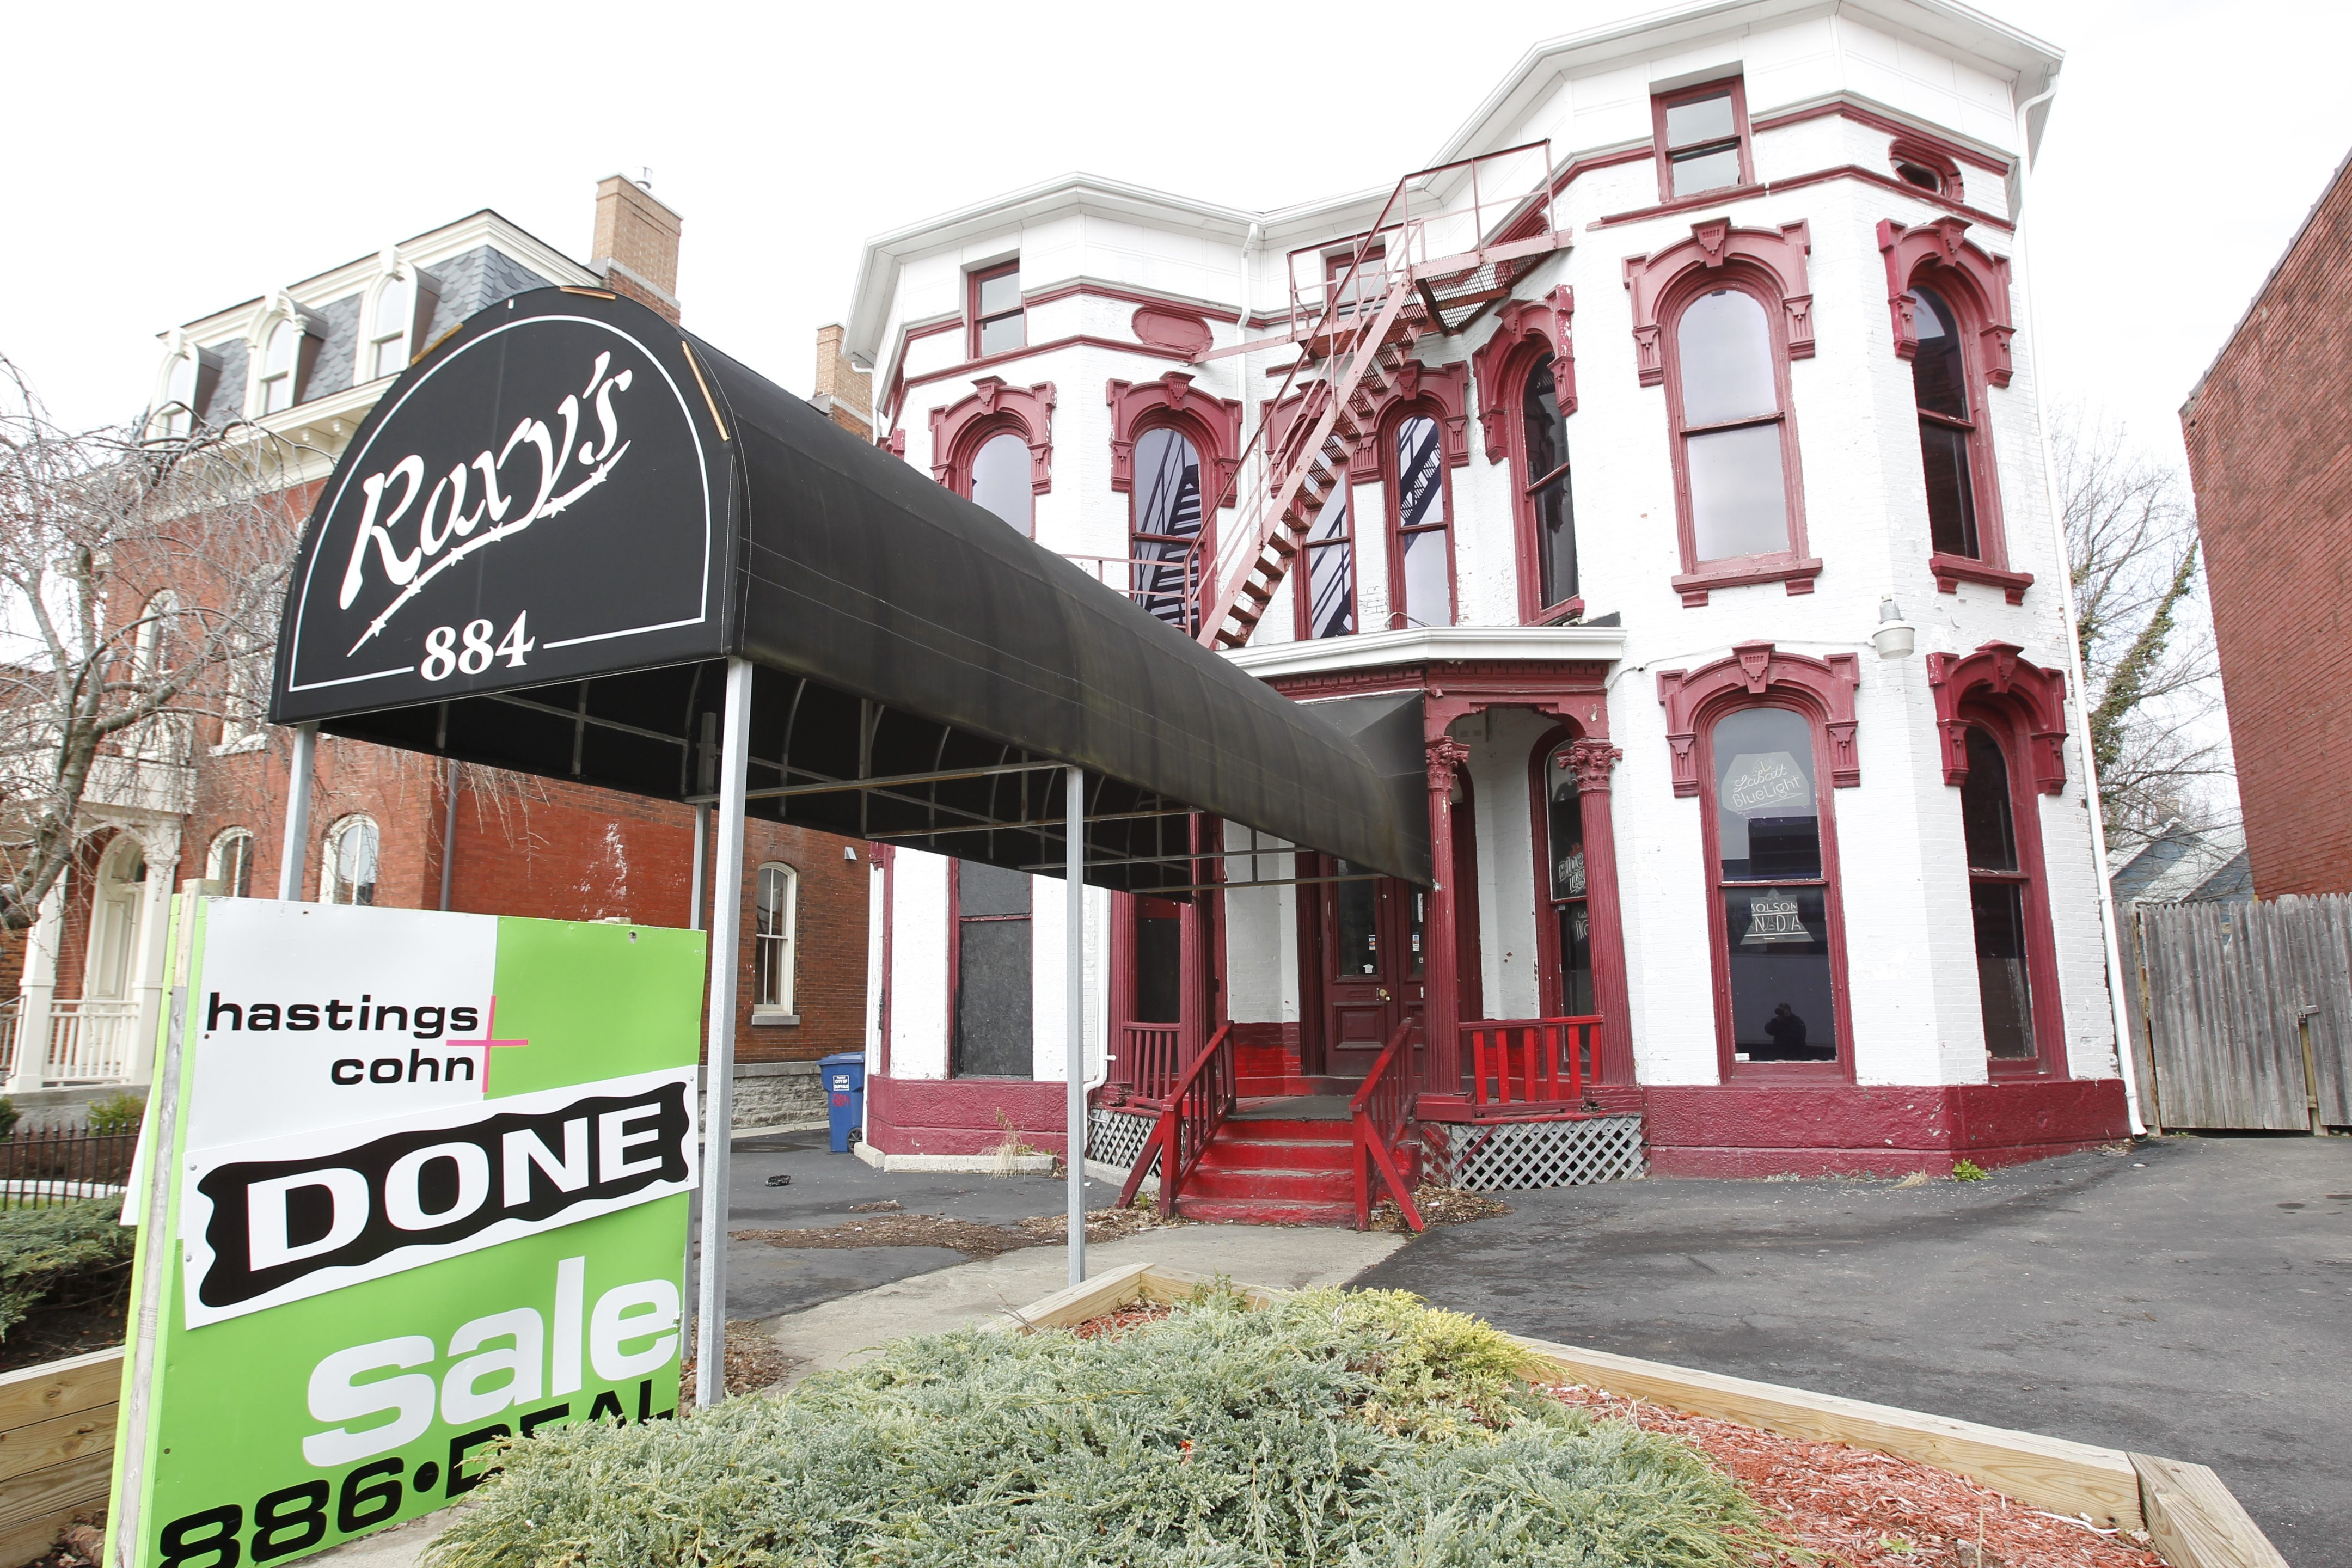 Roxy's, a former gay and lesbian bar on Main Street, has been purchased by Buffalo State College graduate Russ Conrad of Lewiston.  He plans to convert  the building to residential and commercial  units aimed at the nearby Buffalo Niagara Medical Campus.